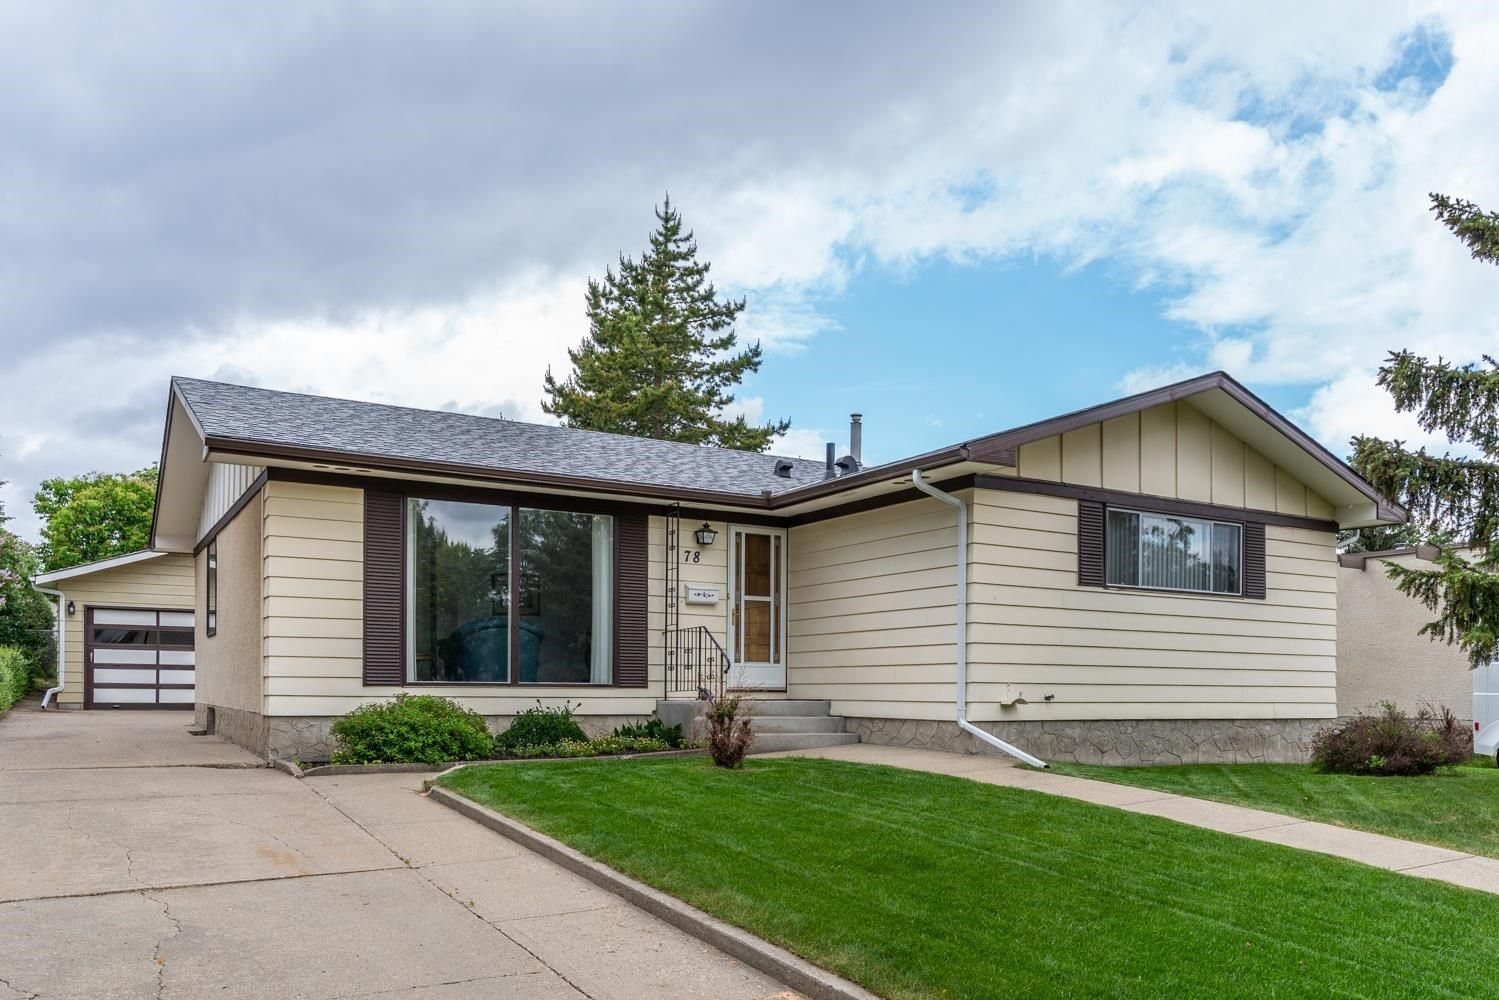 Main Photo: 78 CIRCLEWOOD Drive: Sherwood Park House for sale : MLS®# E4248762